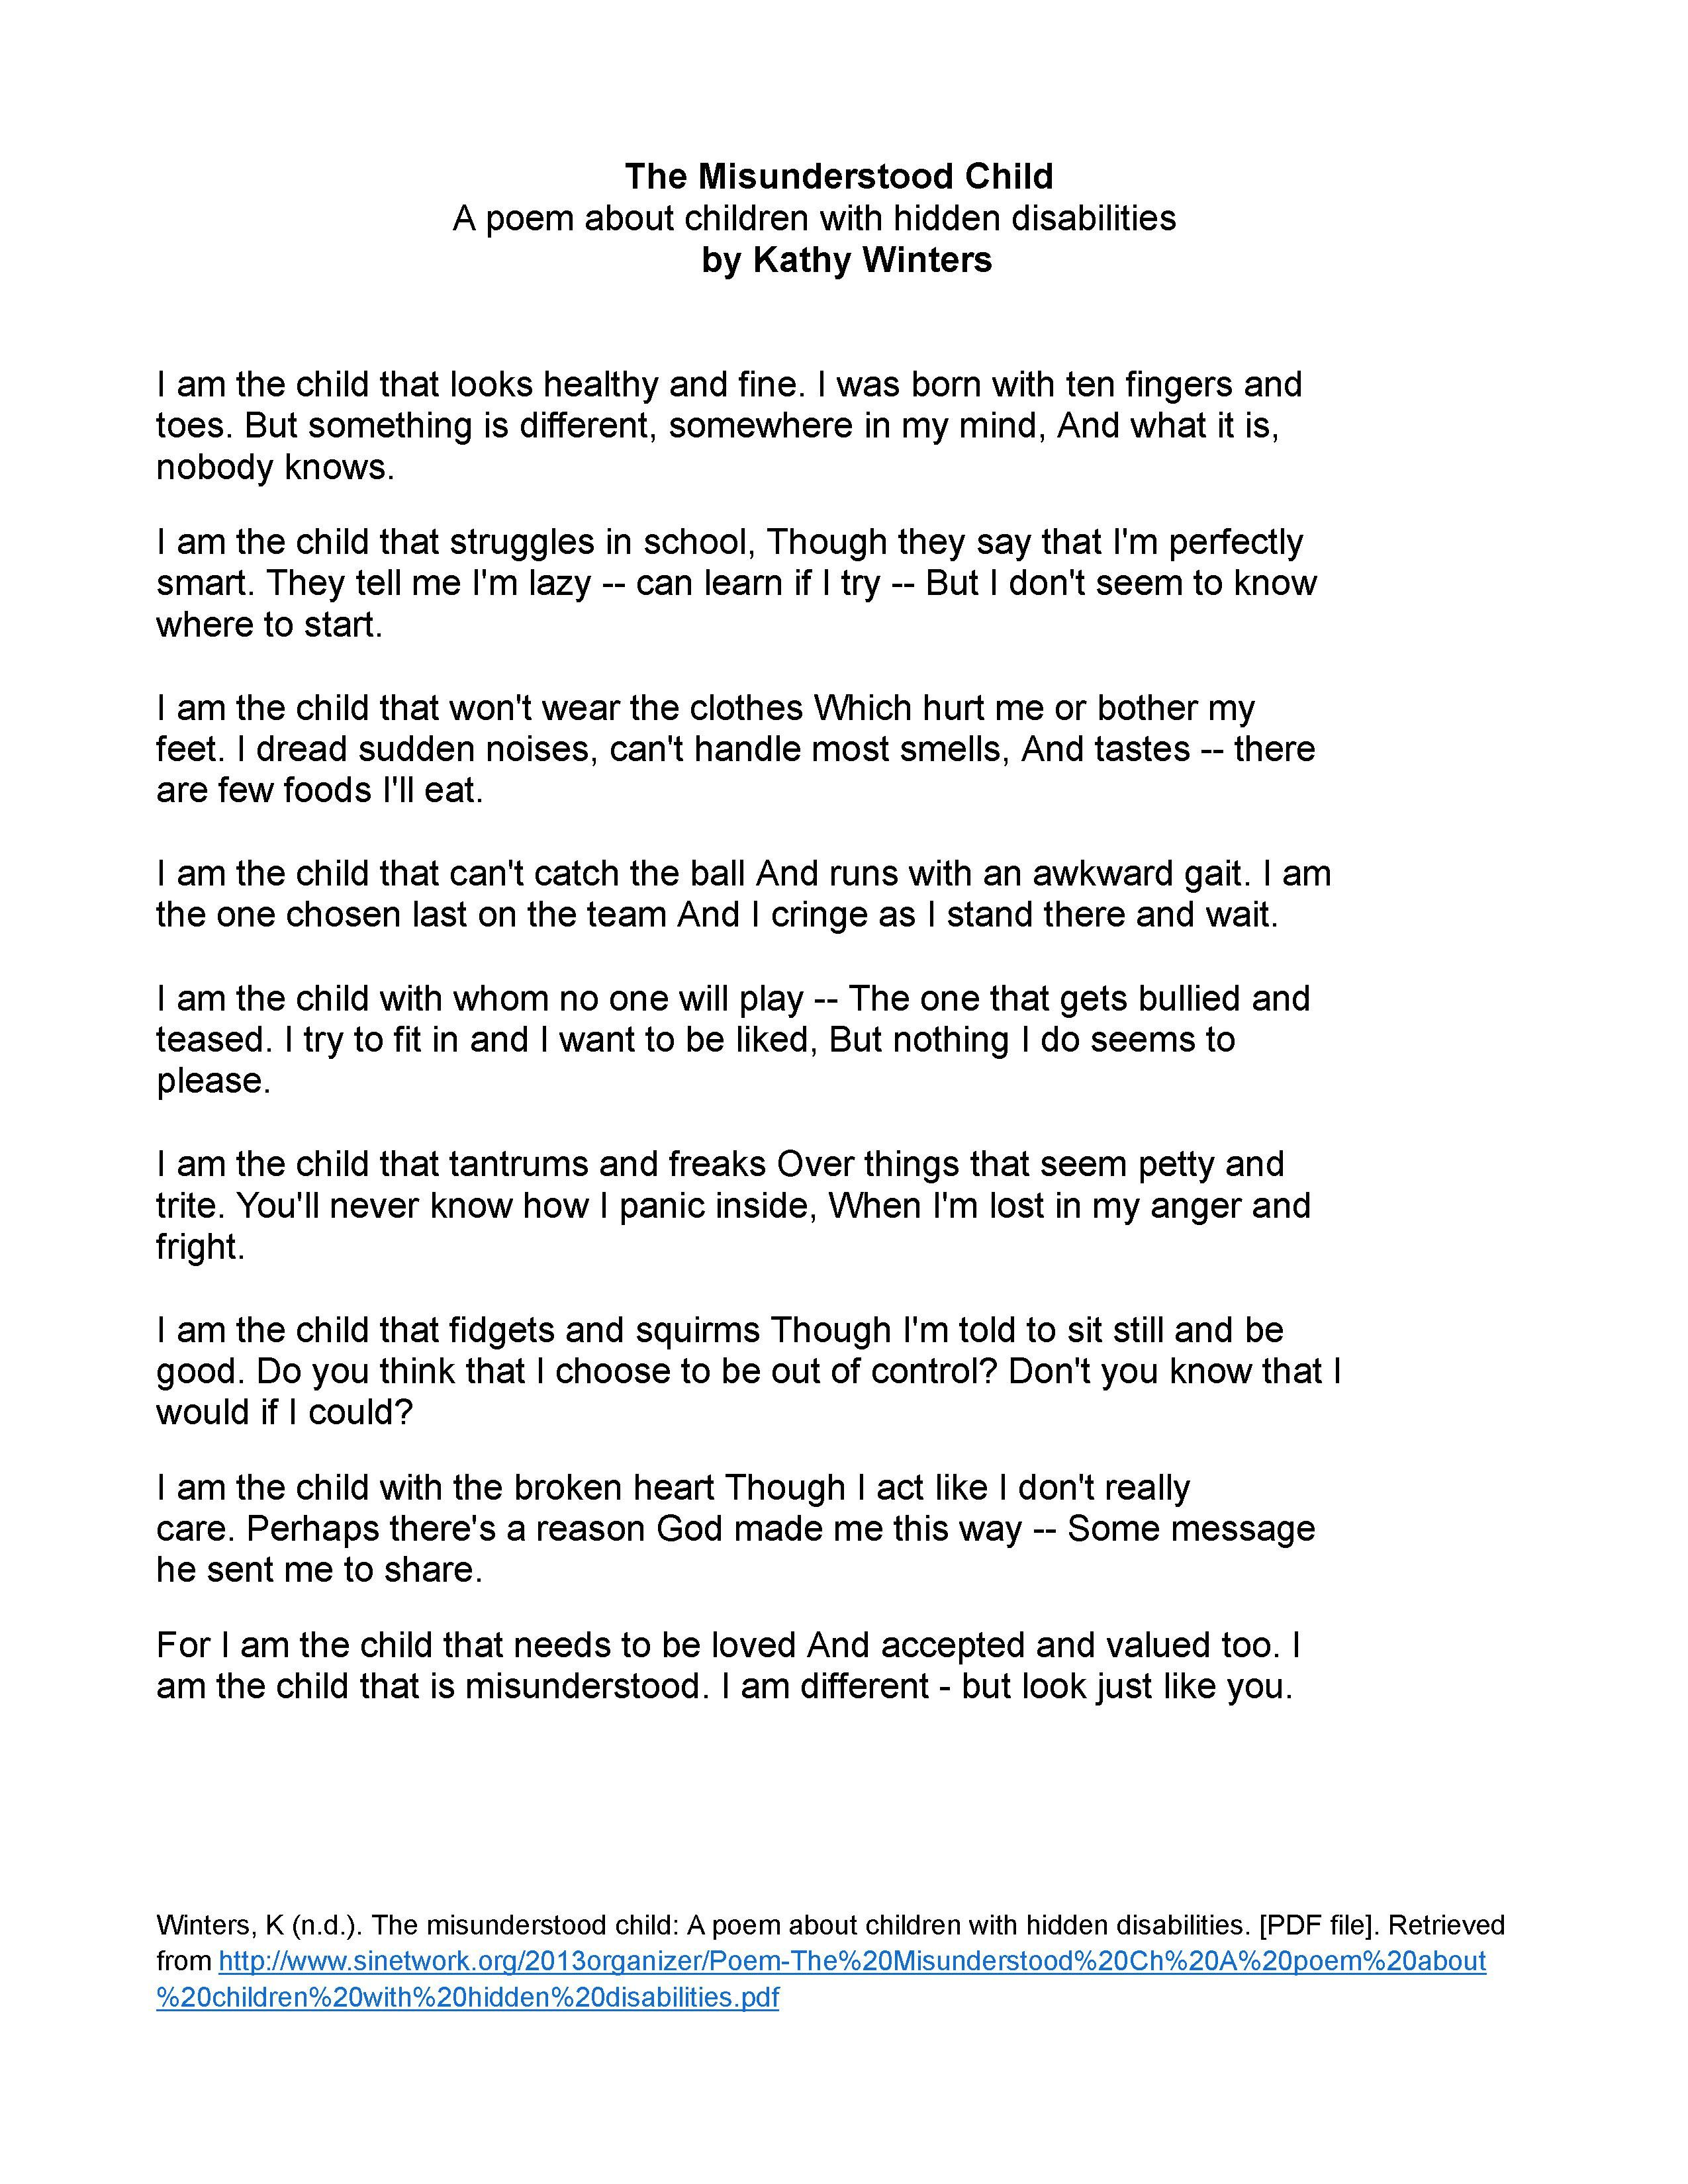 Can You Have Adhd And Still Be Good >> Handout Poem The Misunderstood Child Part 1 Of 2 Quotes